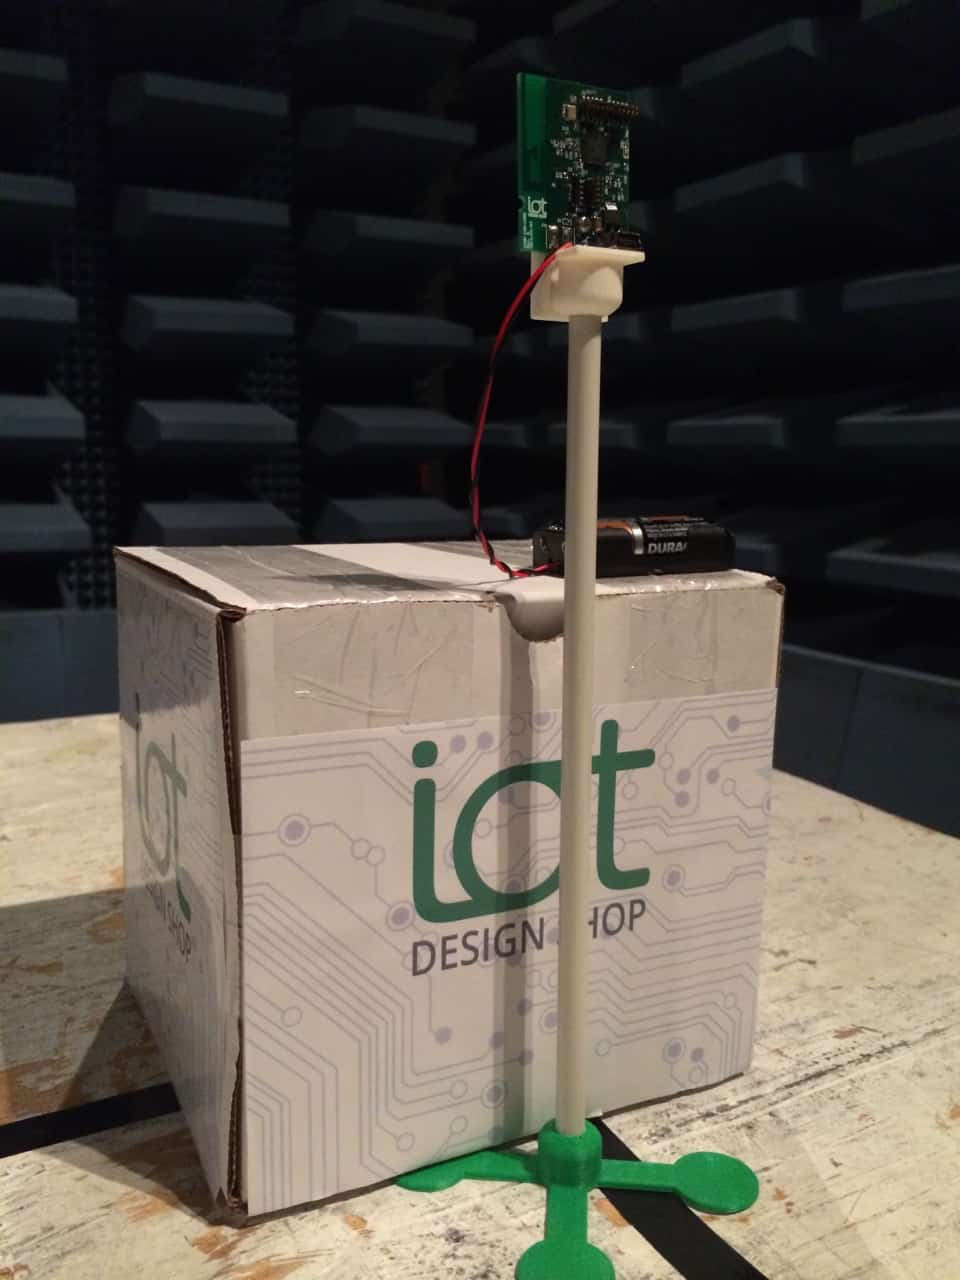 IoT Core during certification testing